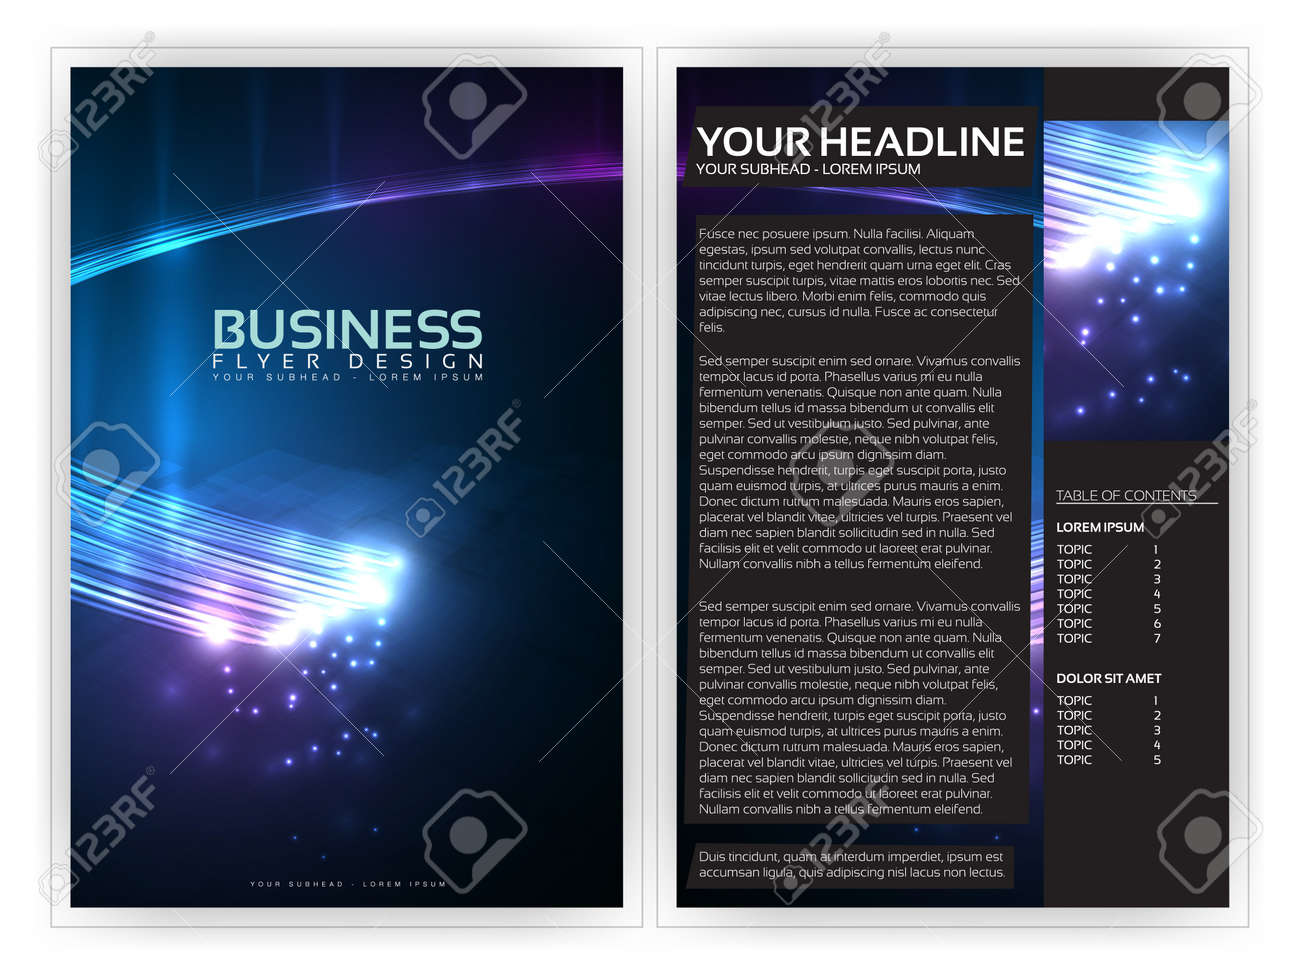 Wonderful 1 Page Resume Format Free Download Thick 100 Free Resume Builder And Download Round 100 Free Resume Builder Online 1099 Contract Template Old 15 Year Old Resume Coloured2 Circle Template 3D Optical Fibers Business Brochure Template Royalty Free Cliparts ..